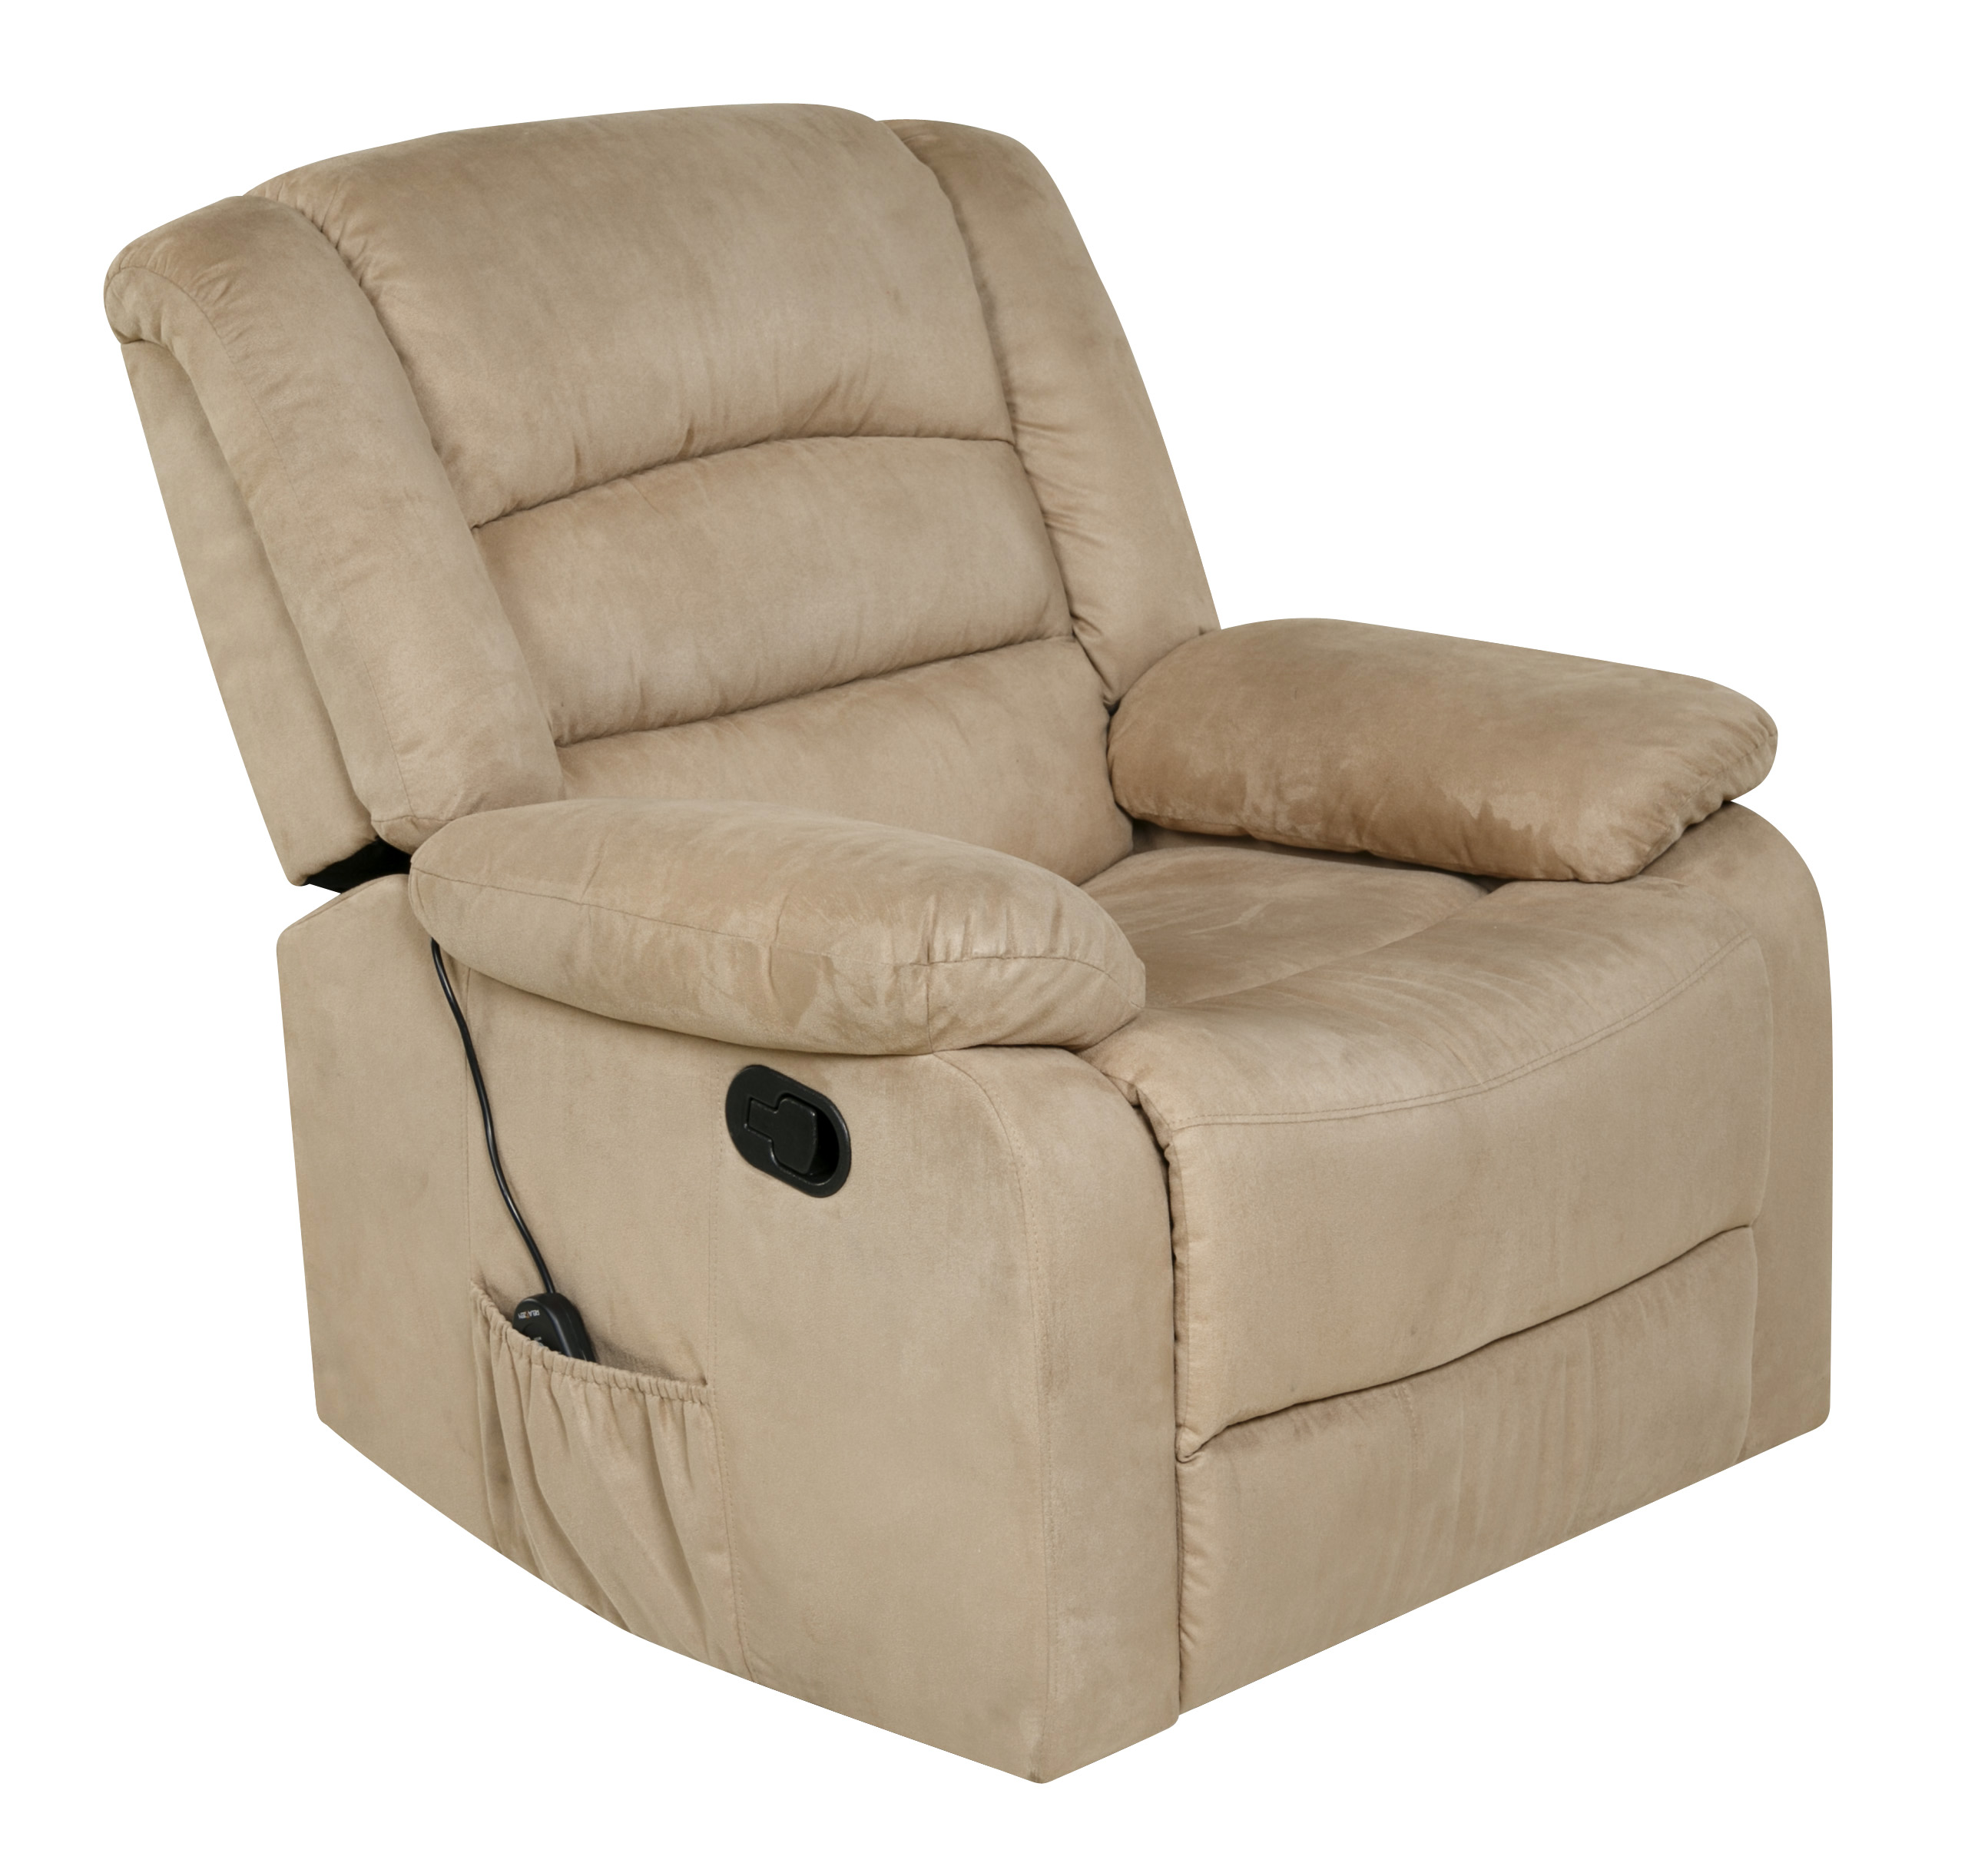 Relaxzen Rocker Recliner with Massage Heat